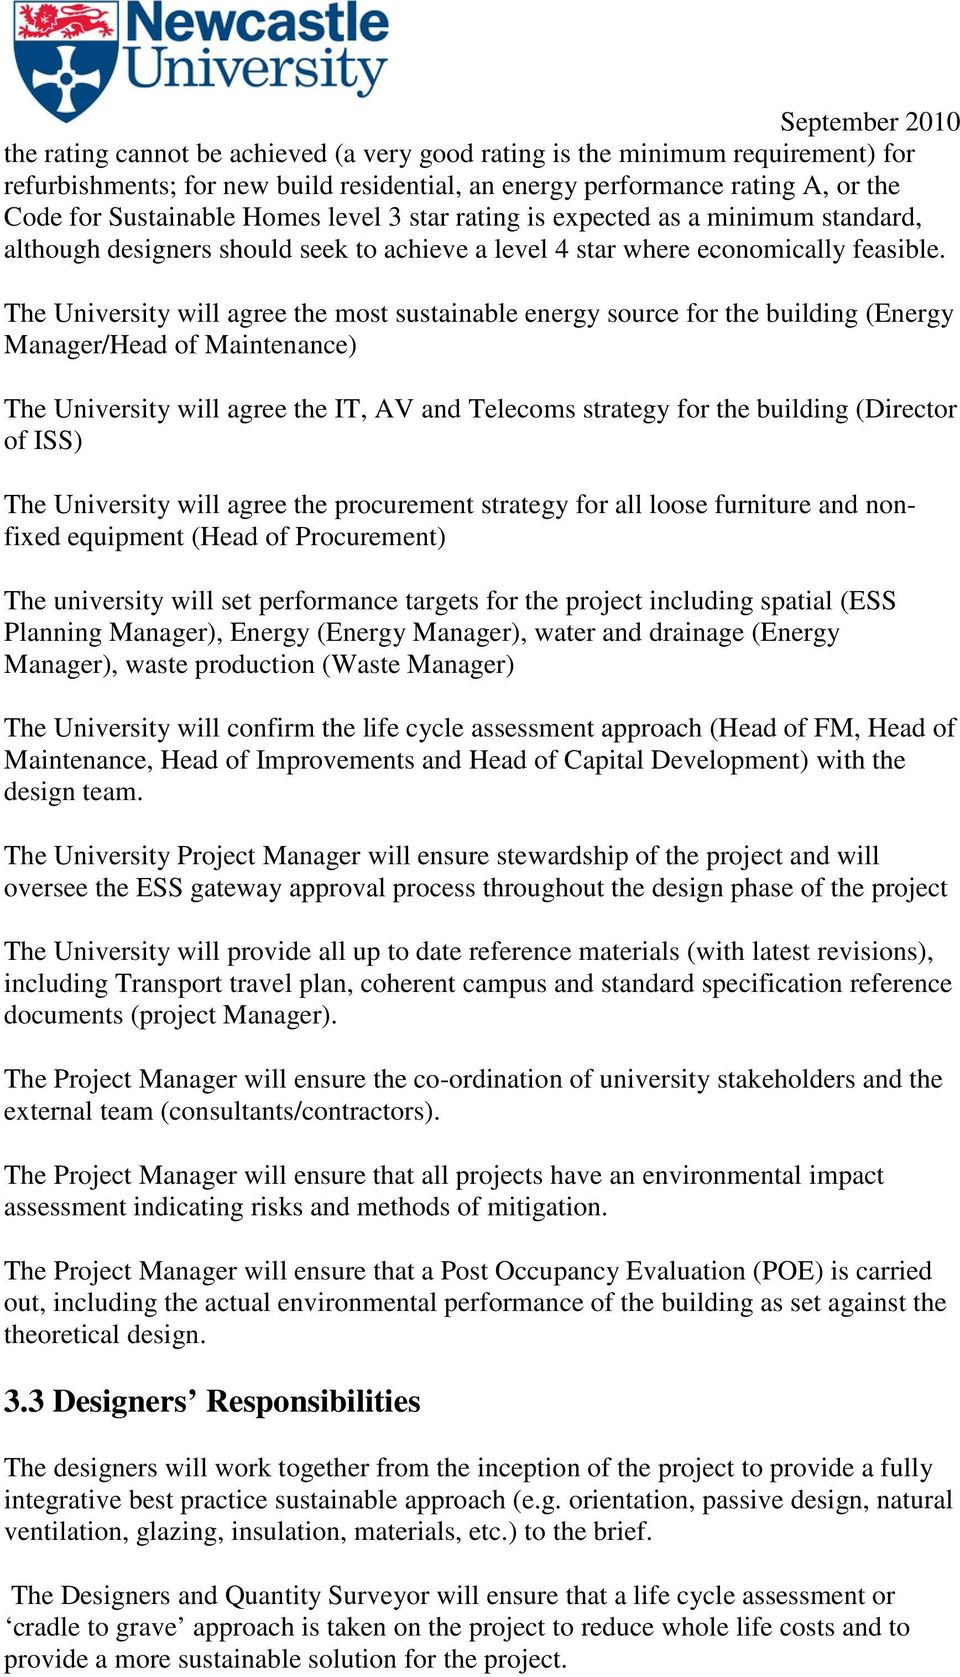 The University will agree the most sustainable energy source for the building (Energy Manager/Head of Maintenance) The University will agree the IT, AV and Telecoms strategy for the building